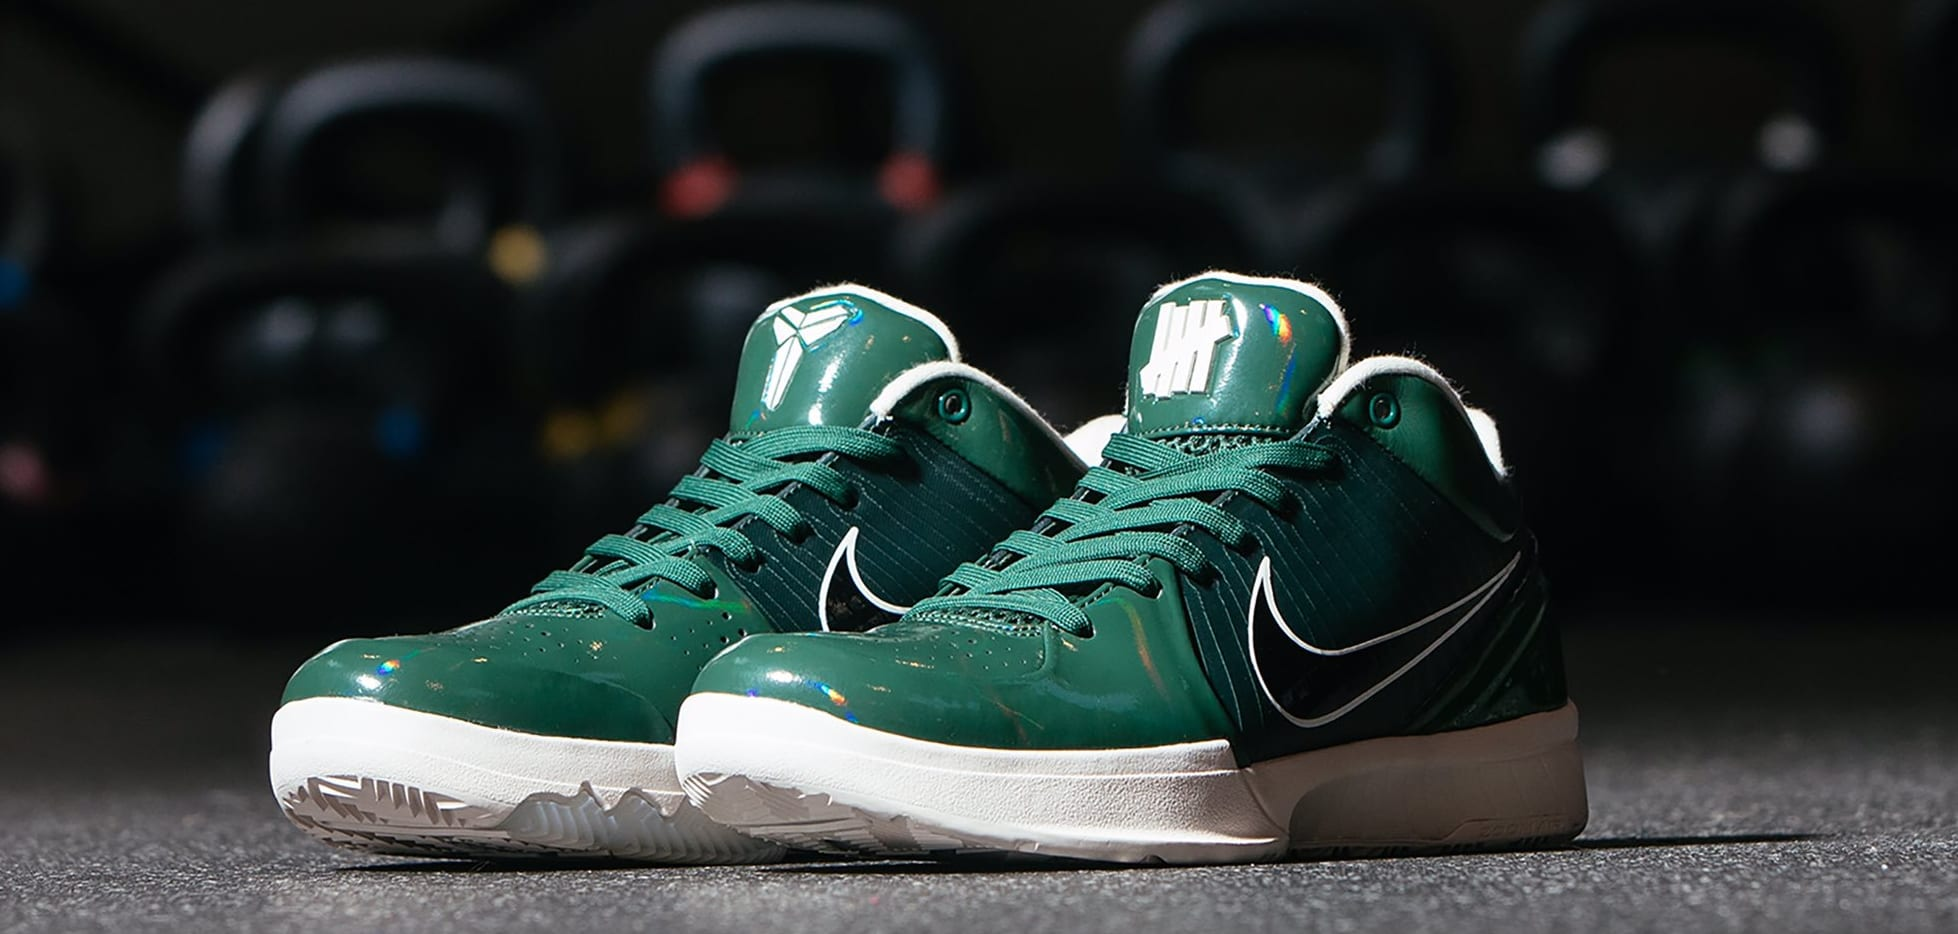 Undefeated x Nike Kobe 4 Protro 'Fir' (Pair)